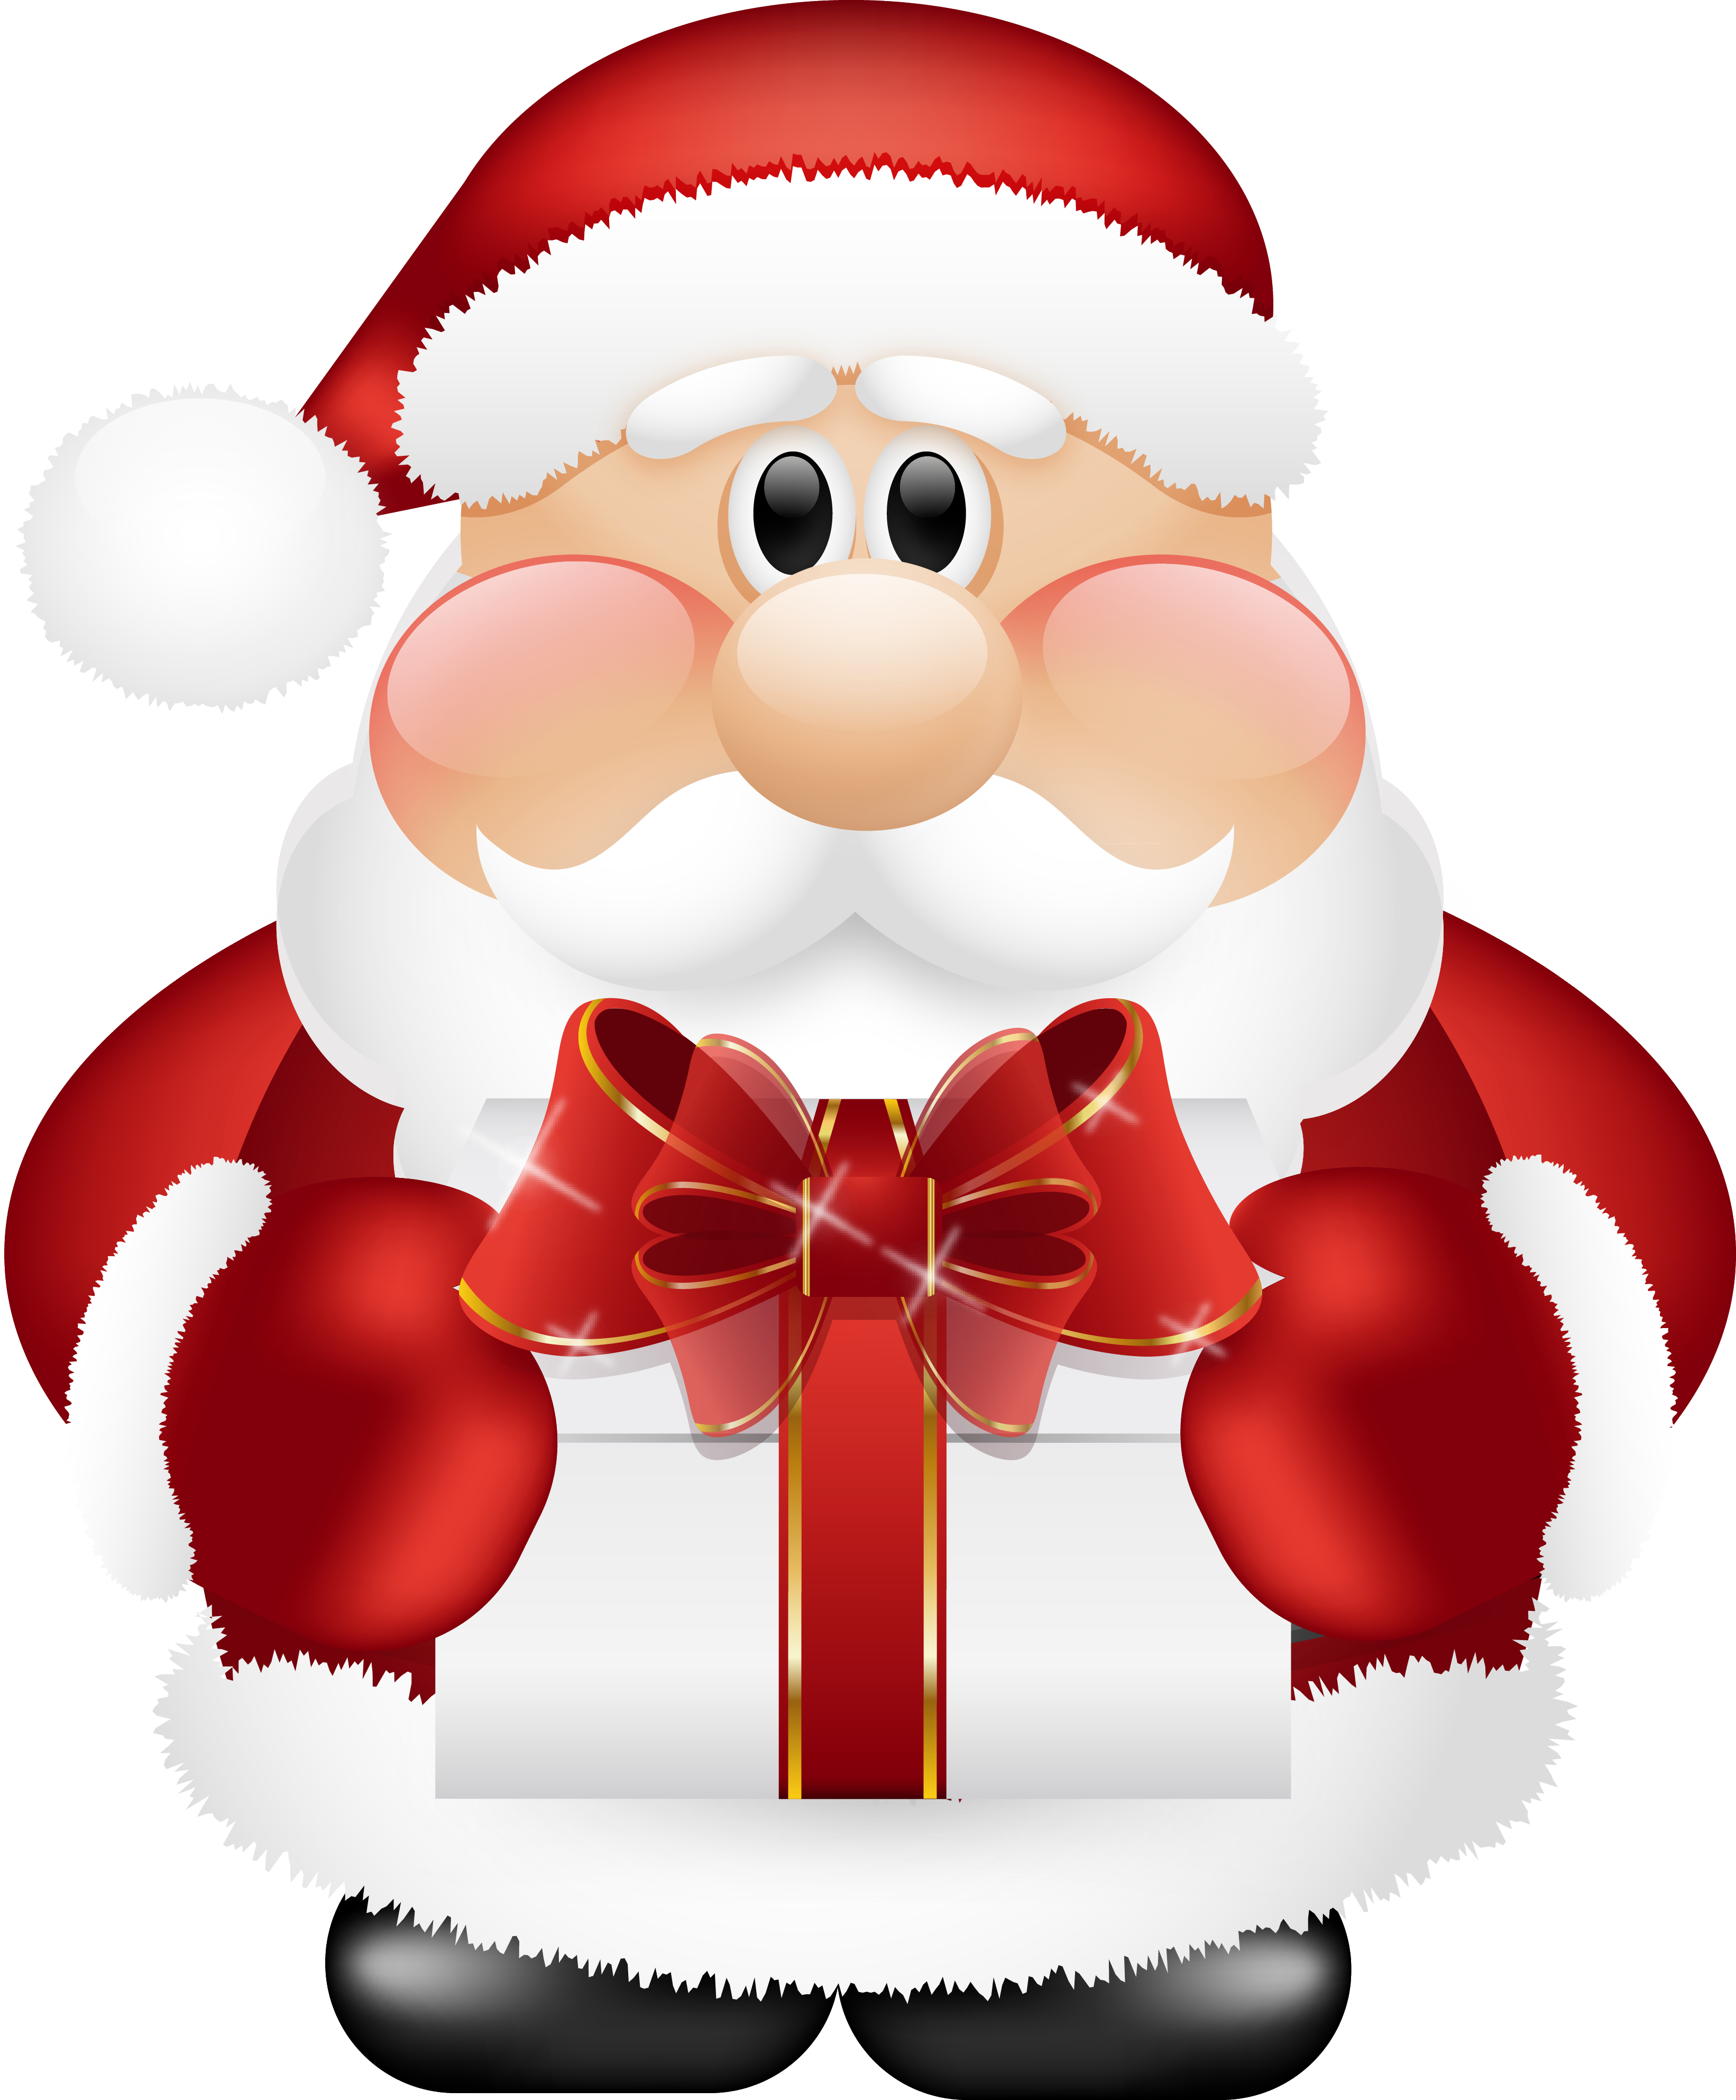 Santa clipart 2 . Gifts on .